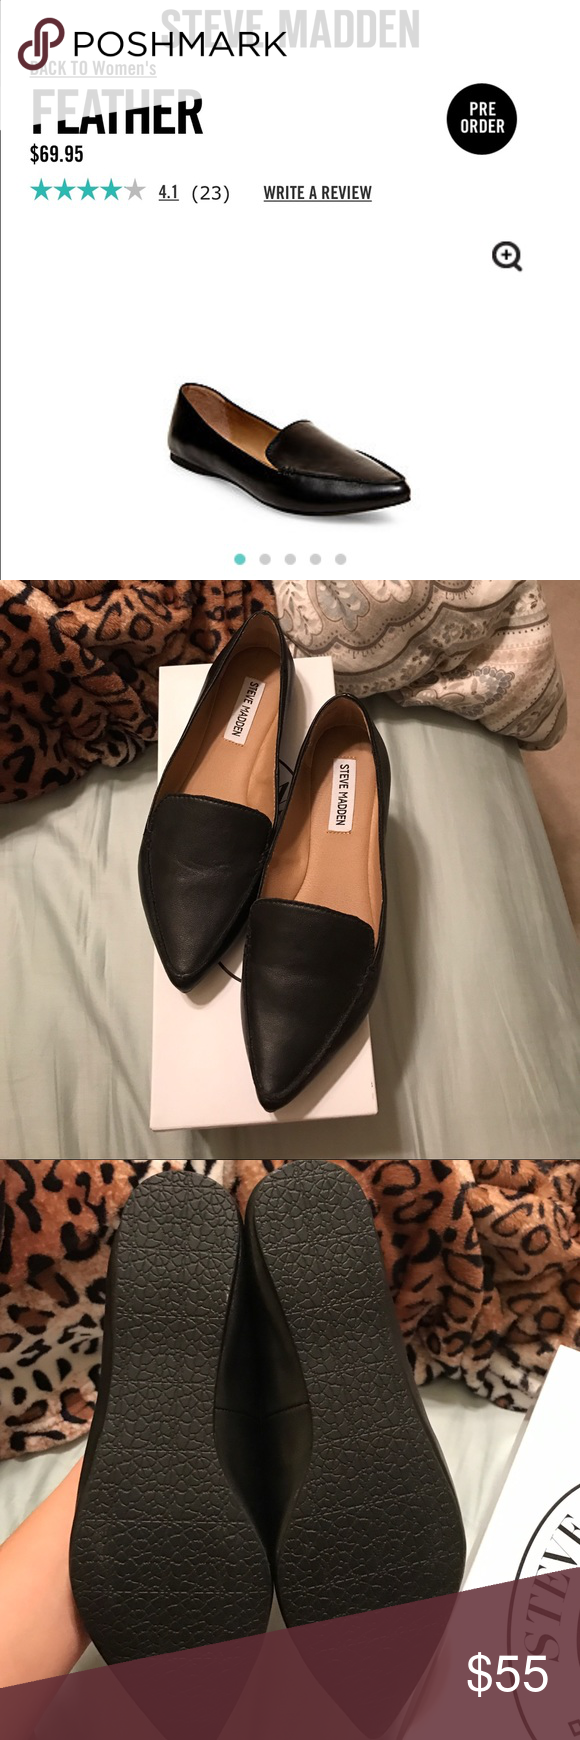 6a555593cea Steve Madden Leather Black flats with box! Style name is Feather. Steve  Madden Shoes Flats   Loafers